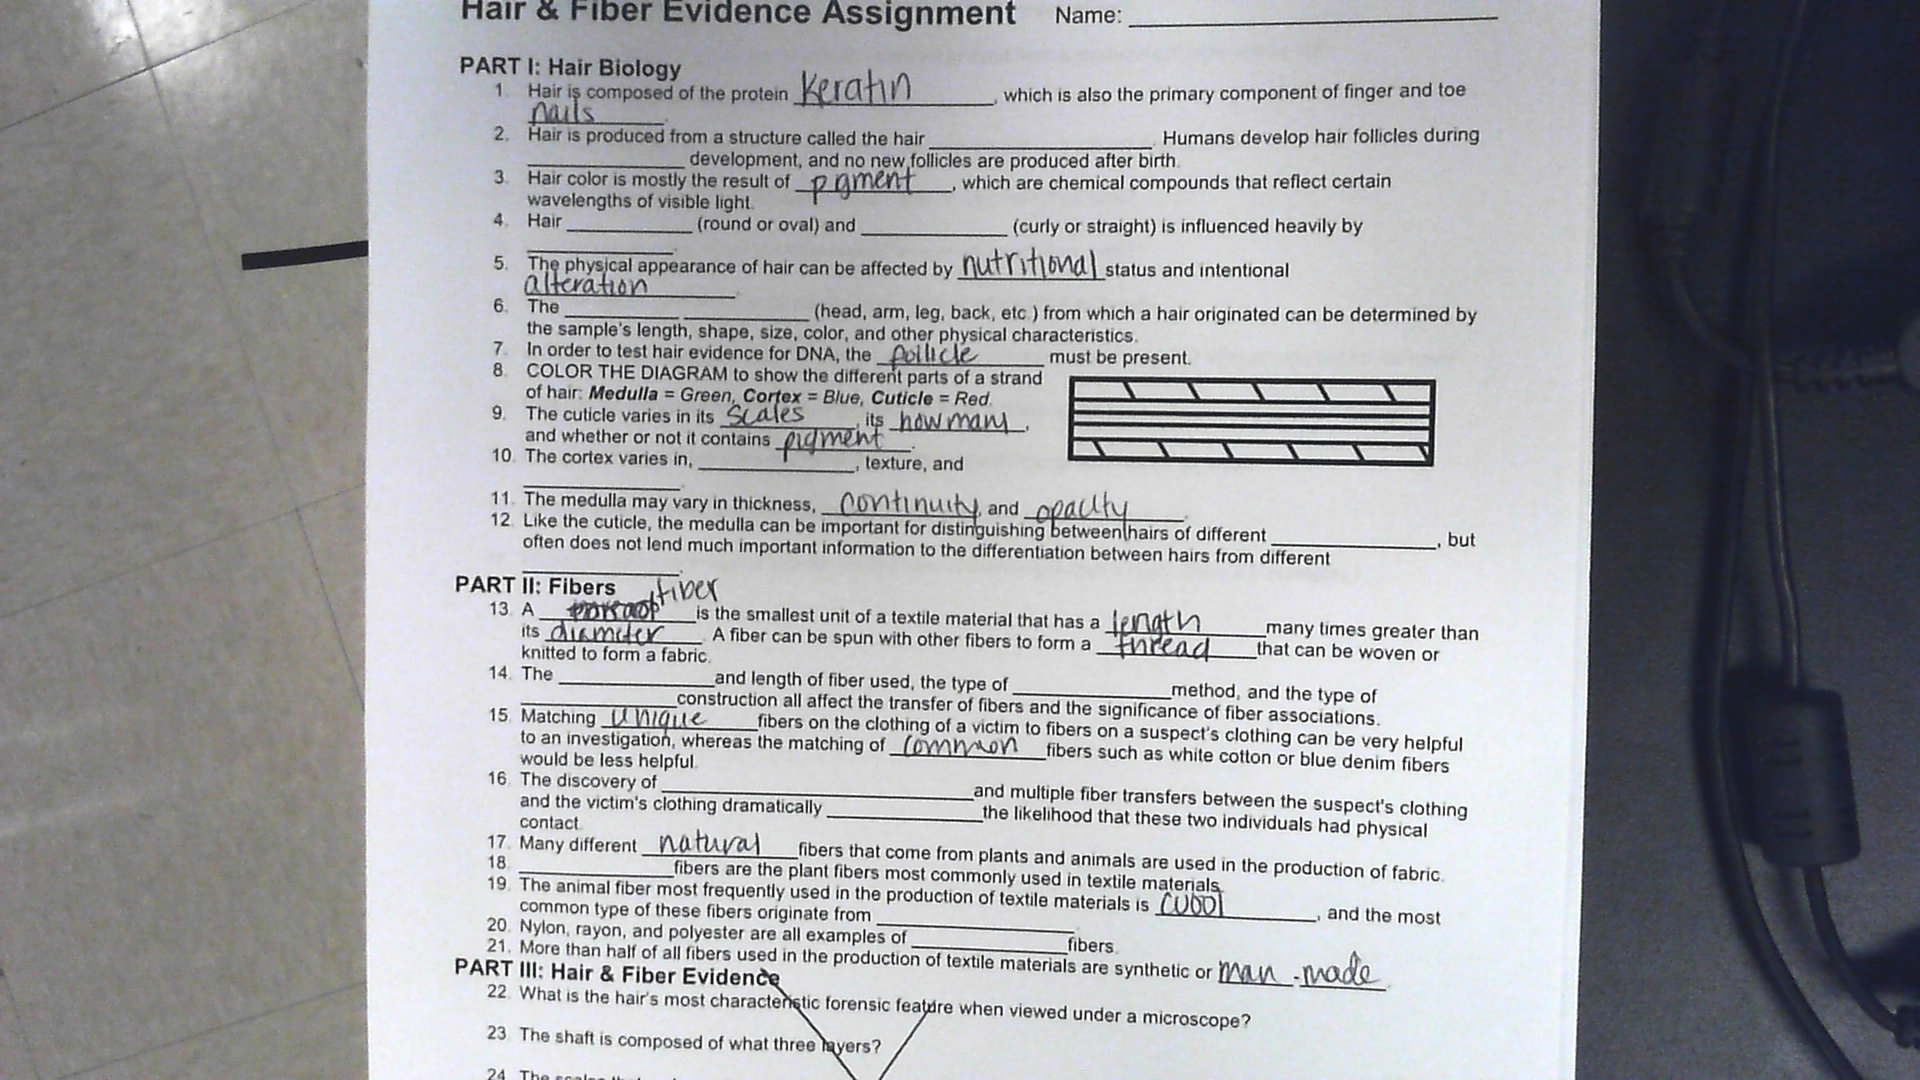 Hair Fiber Evidence Worksheet Answers